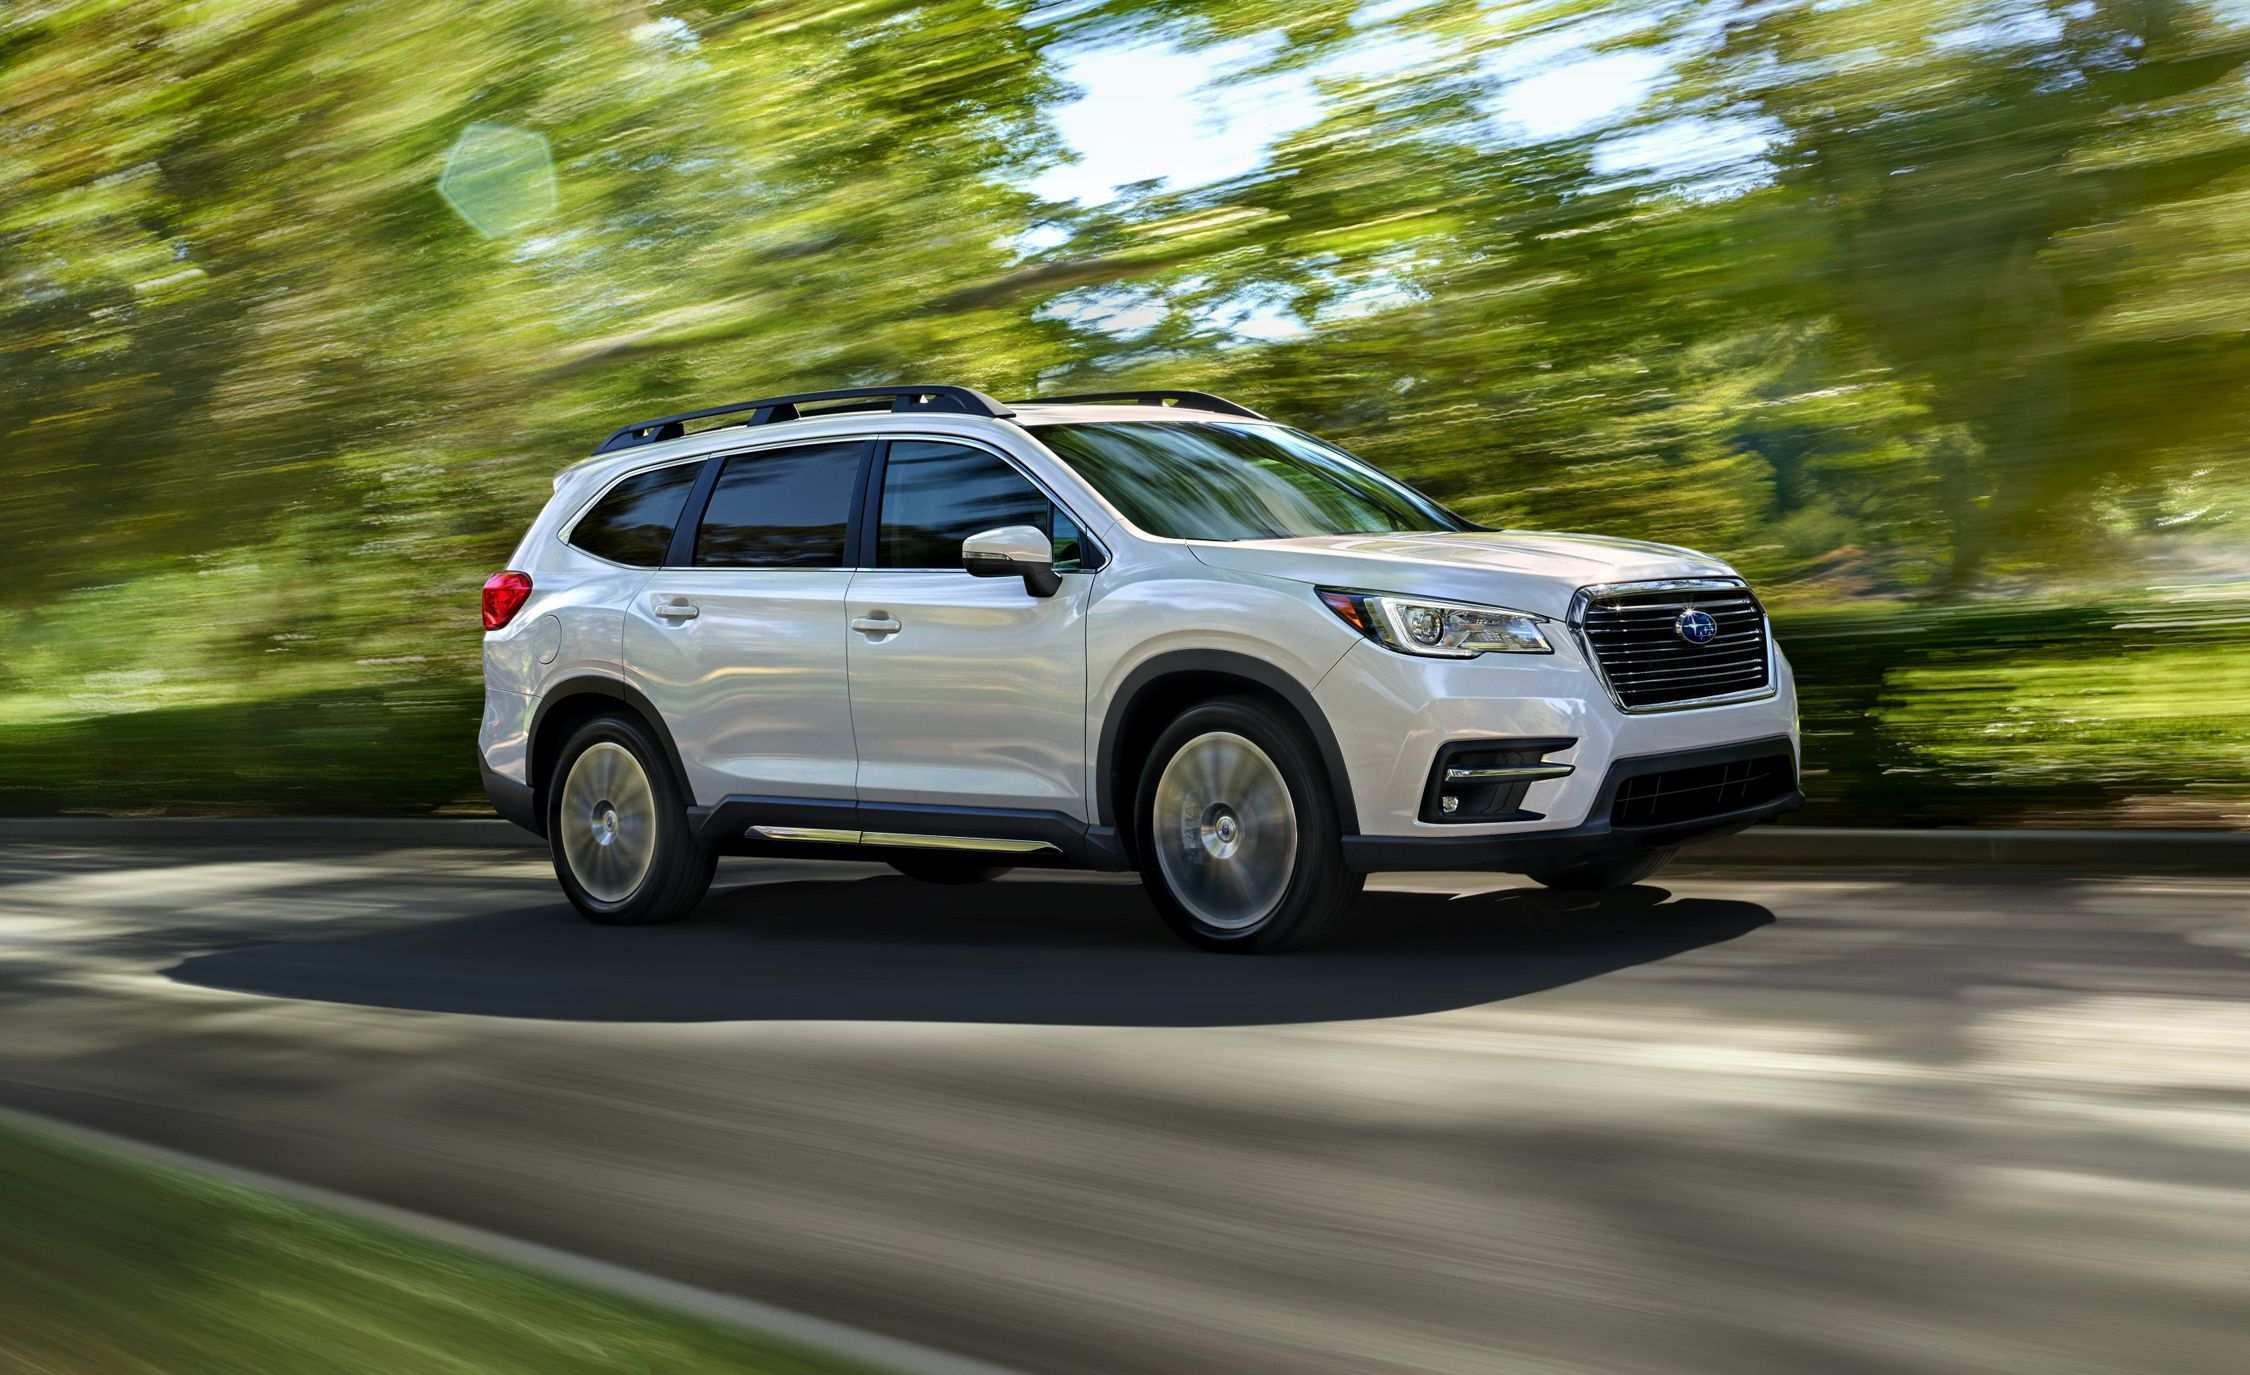 47 The 2019 Subaru Ascent Gvwr Photos with 2019 Subaru Ascent Gvwr